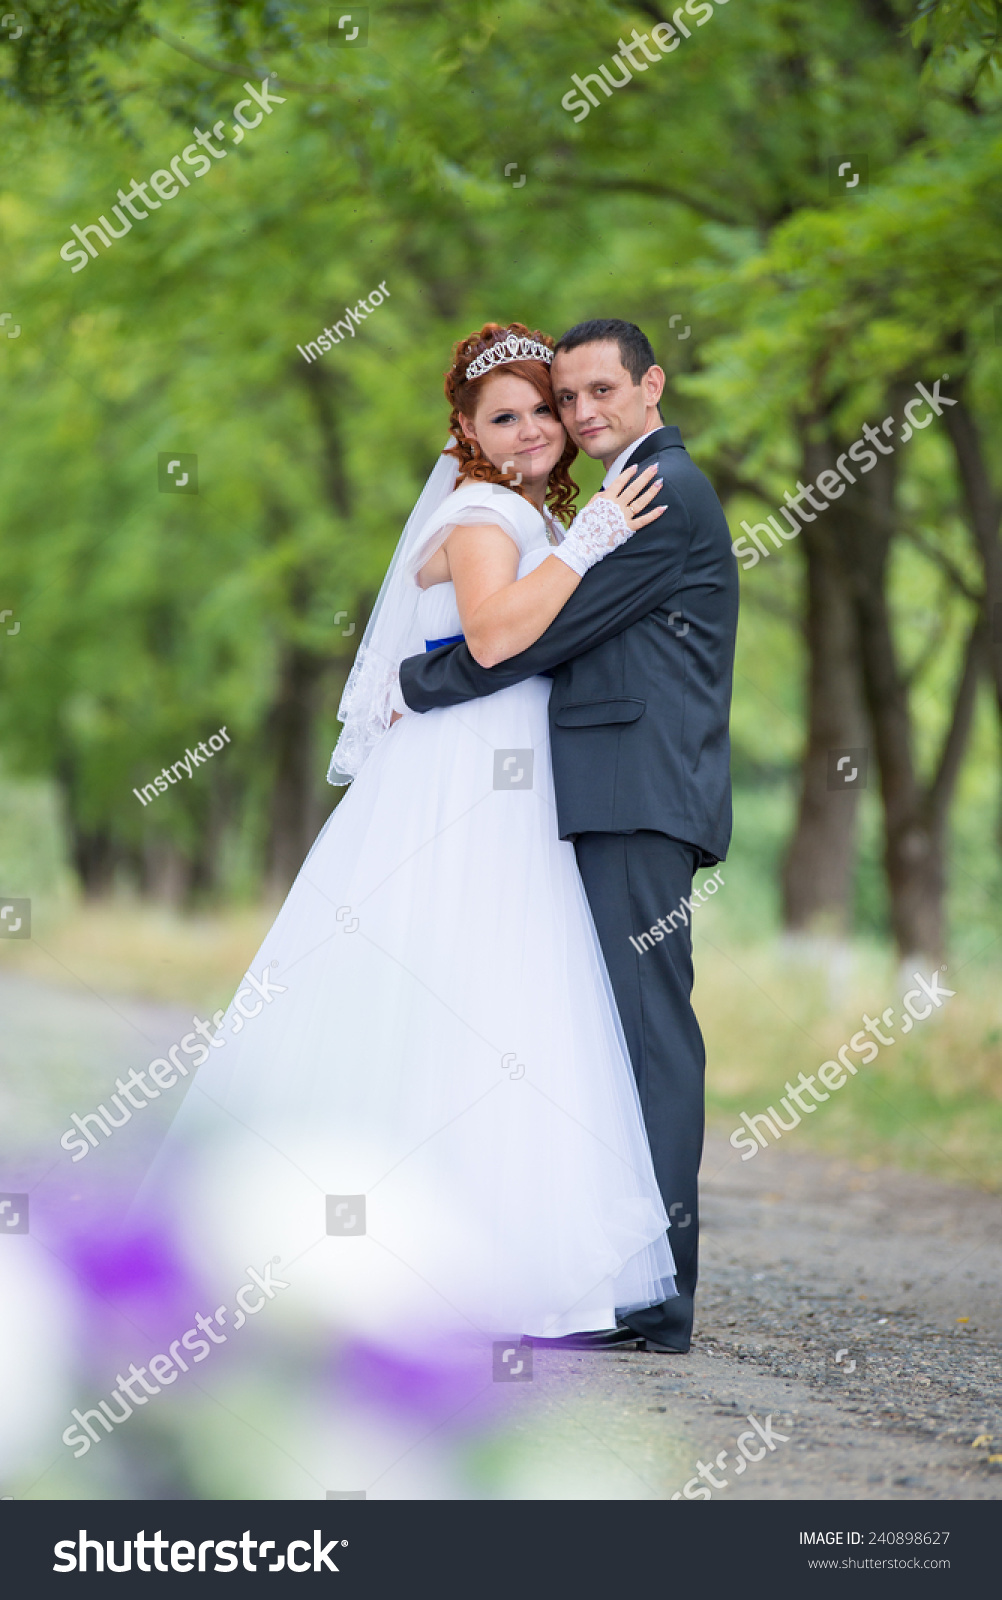 Beautiful Married Couple Wedding Day Stock Photo 240898627. Summer Wedding Dresses. Wedding Guest Dresses For 60 Year Olds. Moonlight Wedding Dress Style J6165. Wedding Dresses Short In Front. Blue Wedding Dress Beautiful. Wedding Dresses Short With Lace. Catholic Wedding Guest Dress Requirements. A-line Pink Wedding Dresses